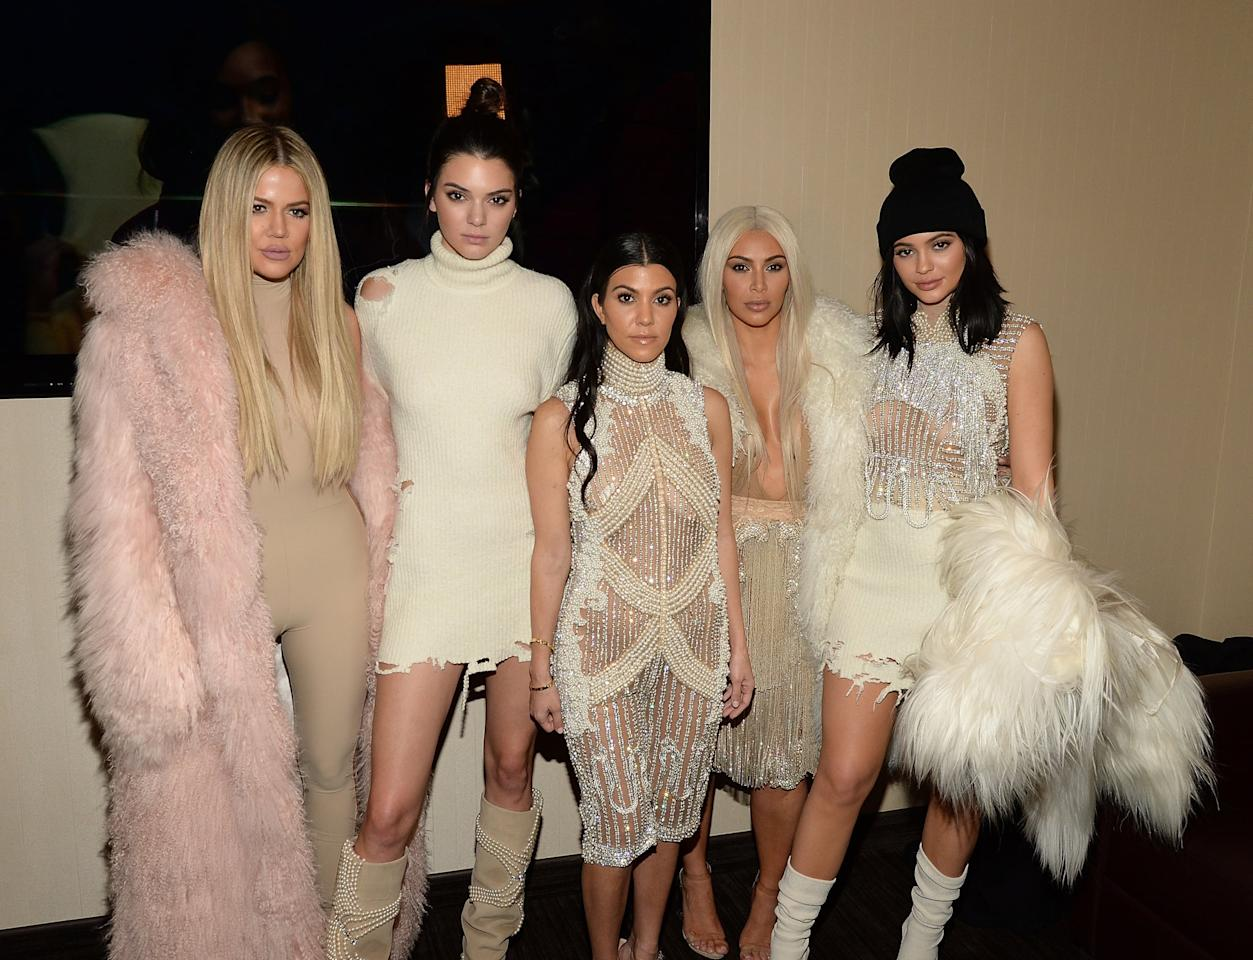 "<p>The explosion of reality shows, like Keeping Up With the Kardashians, and our fascination with them has influenced beauty ideals of the 2010s. From the <a href=""https://www.popsugar.com/beauty/How-Much-Money-Do-Kardashians-Make-From-Beauty-Products-45035971"" class=""ga-track"" data-ga-category=""Related"" data-ga-label=""https://www.popsugar.com/beauty/How-Much-Money-Do-Kardashians-Make-From-Beauty-Products-45035971"" data-ga-action=""In-Line Links"">Kardashian-Jenner beauty empire</a> to the contoured face made popular by <strong>RuPaul's Drag Race</strong>, celebrities and socialites brought more dramatic aesthetics to the looks of the decade.</p>"